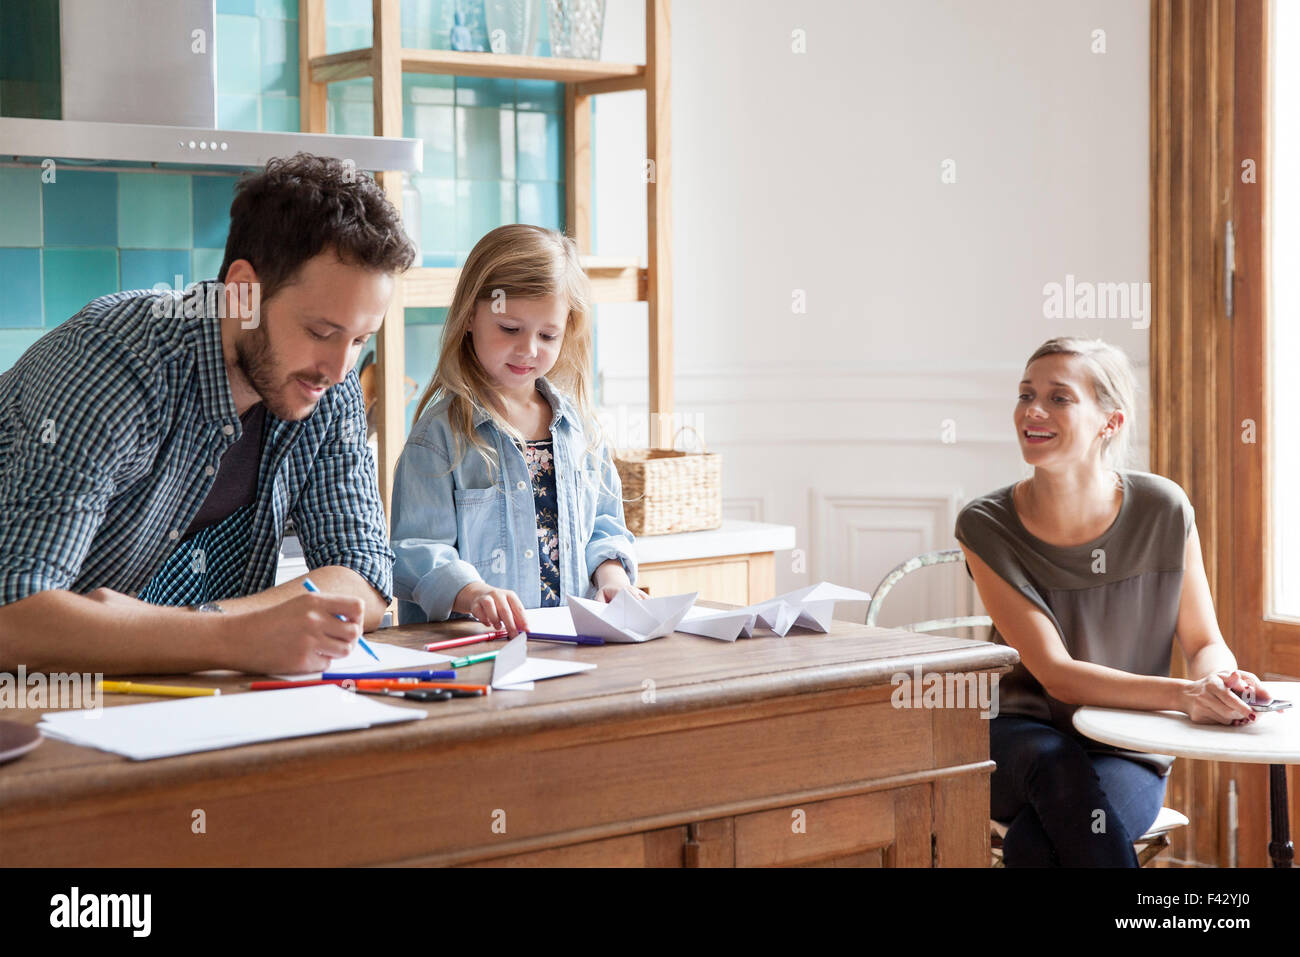 Parents spending time with young daughter at home - Stock Image